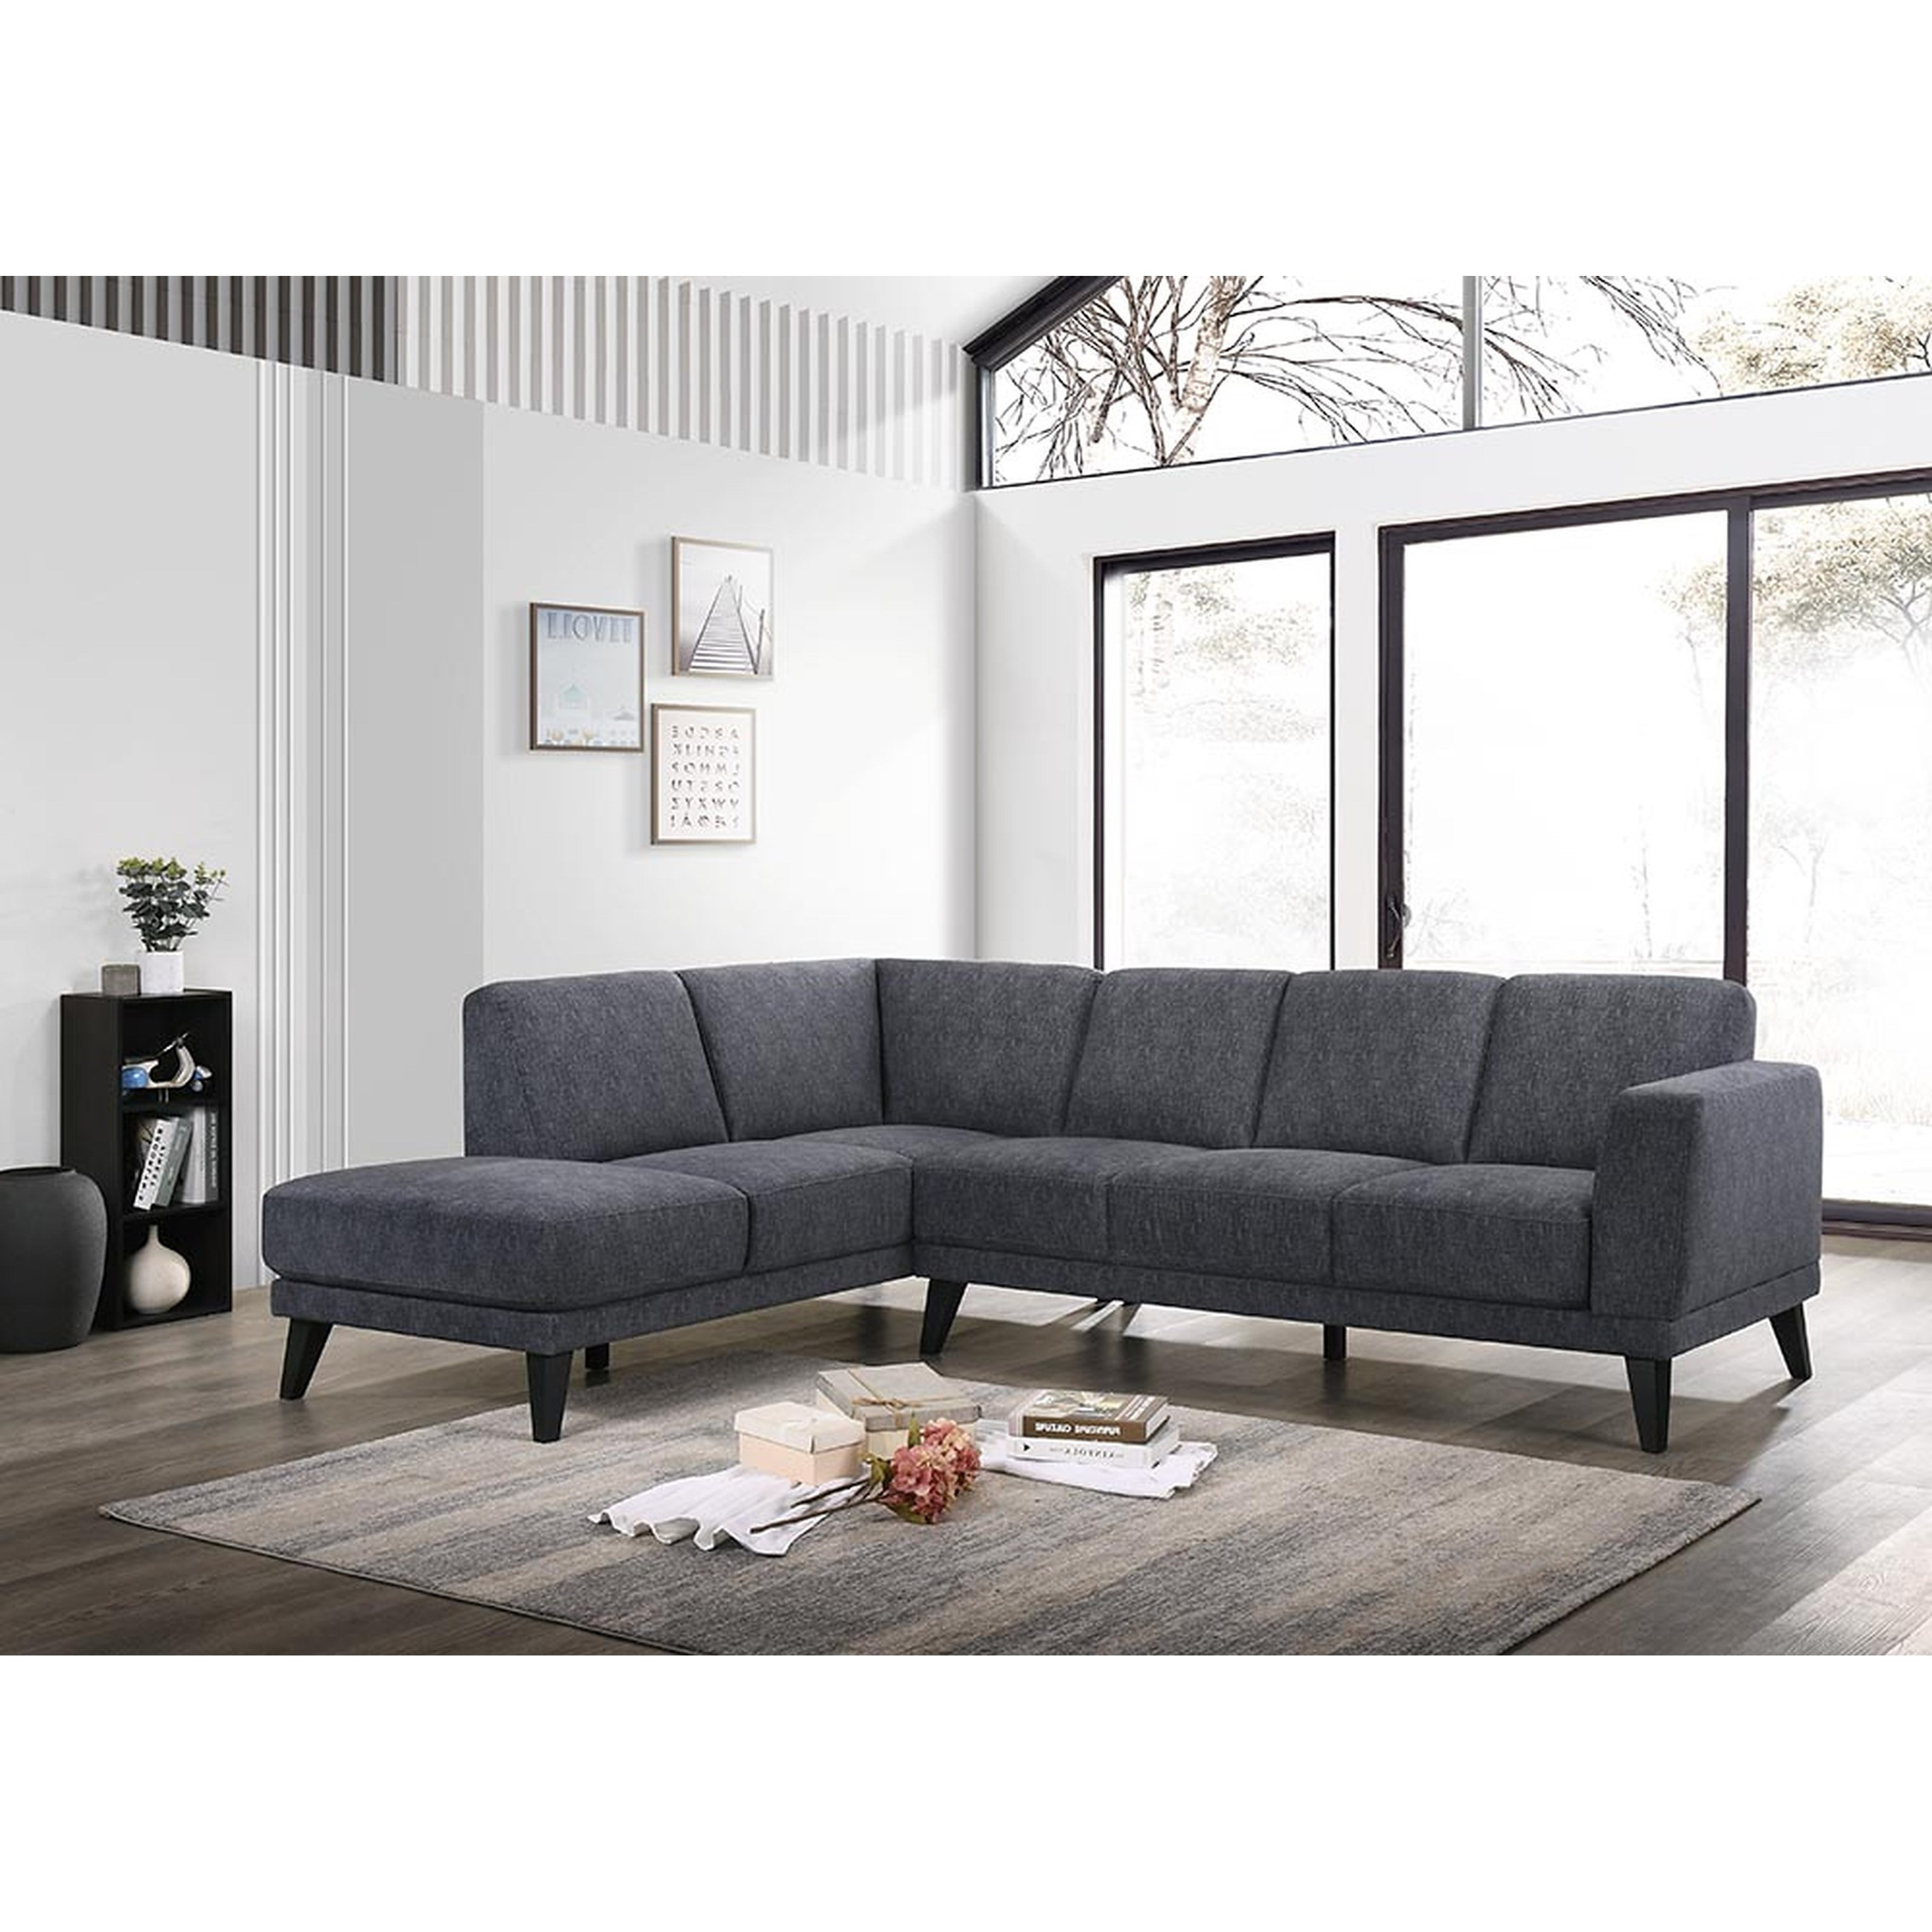 5-Seat Sectional w/ LAF Chaise